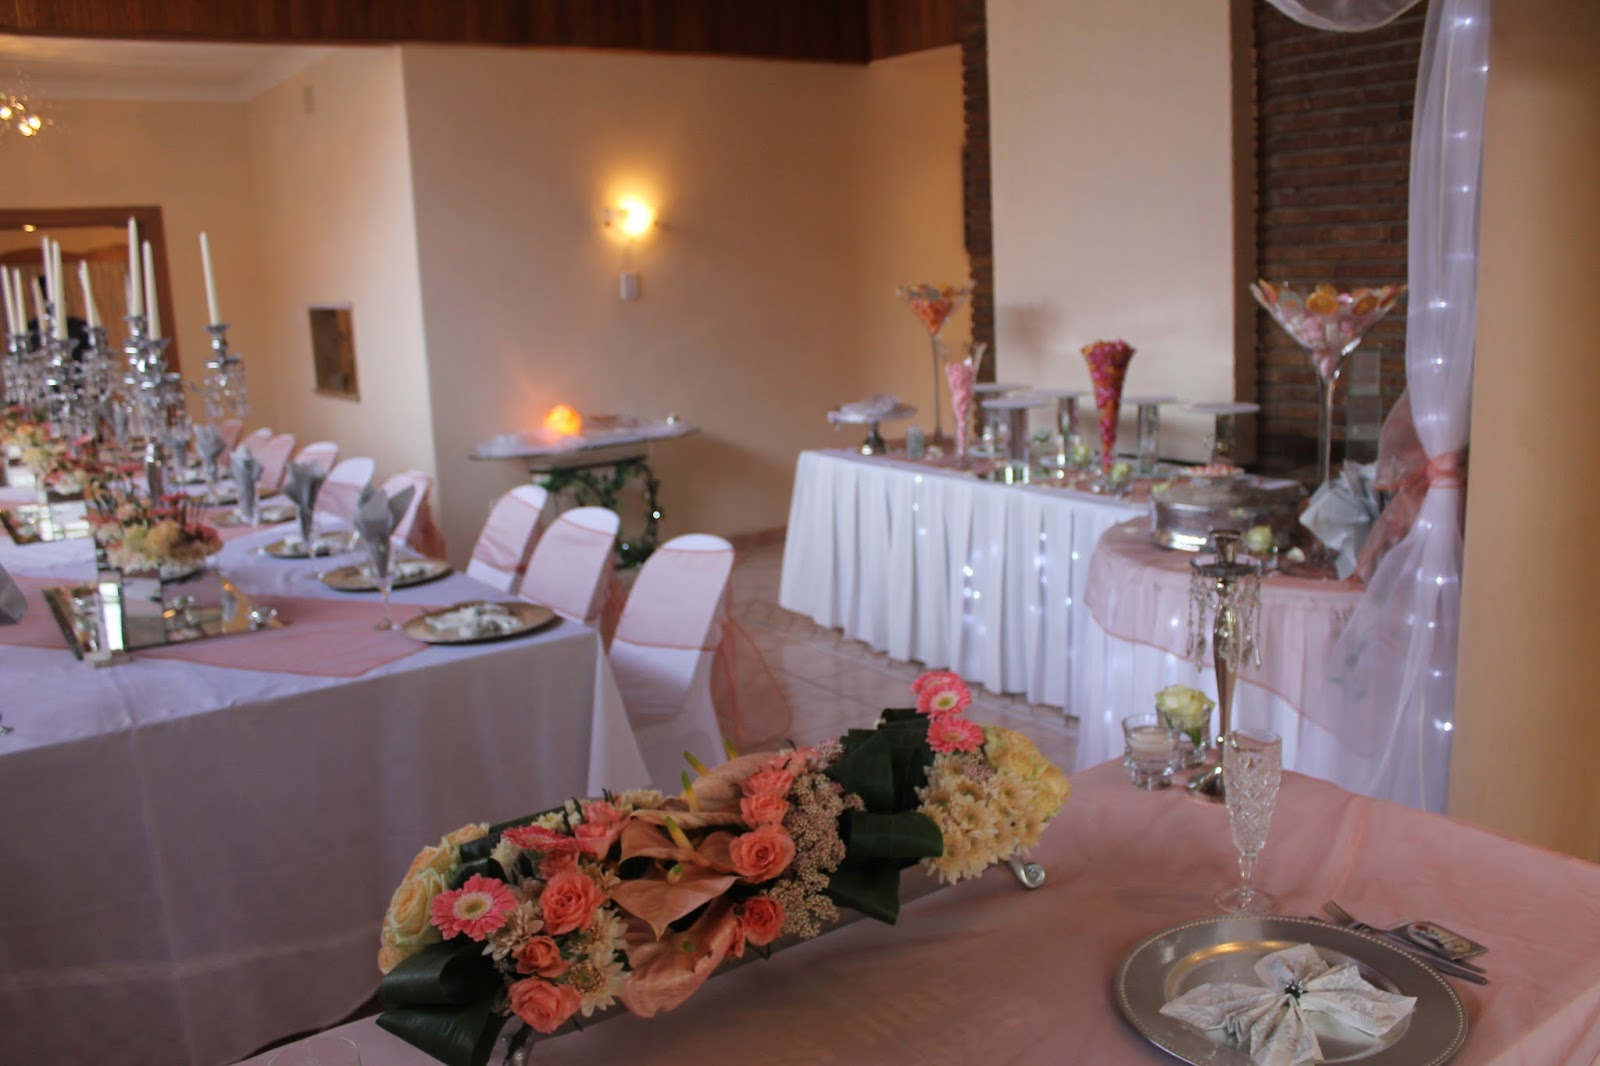 venue for baby showers bridal showers weddings with halaal catering